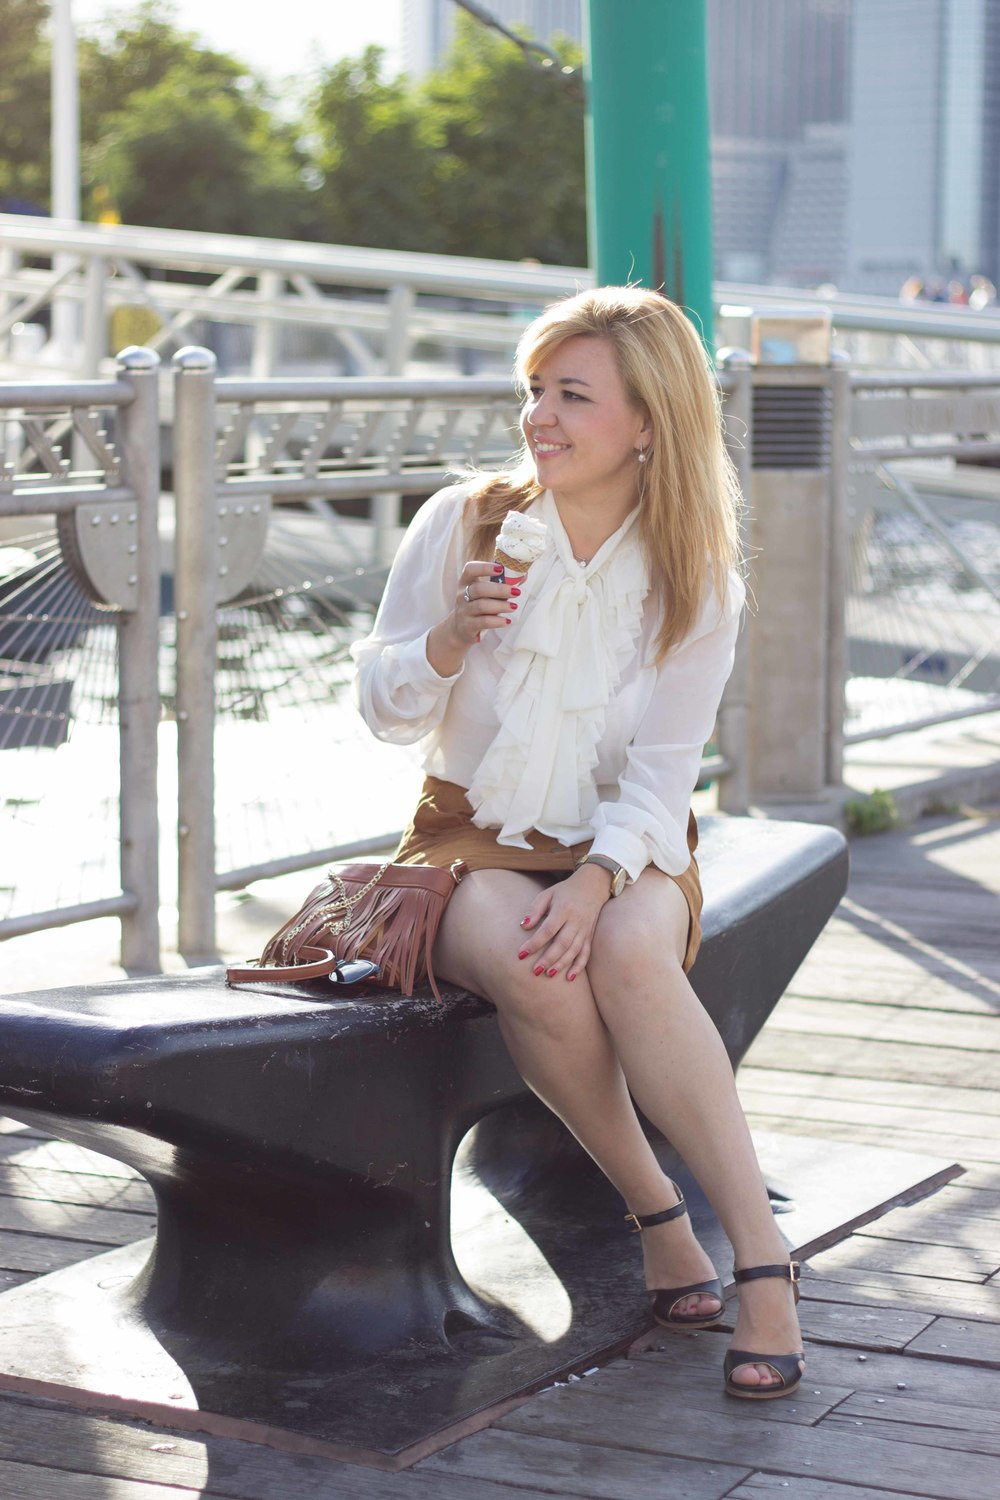 natasha brooklyn ice cream factory downtown brooklyn bridge park portrait new york irina korrelat.jpg